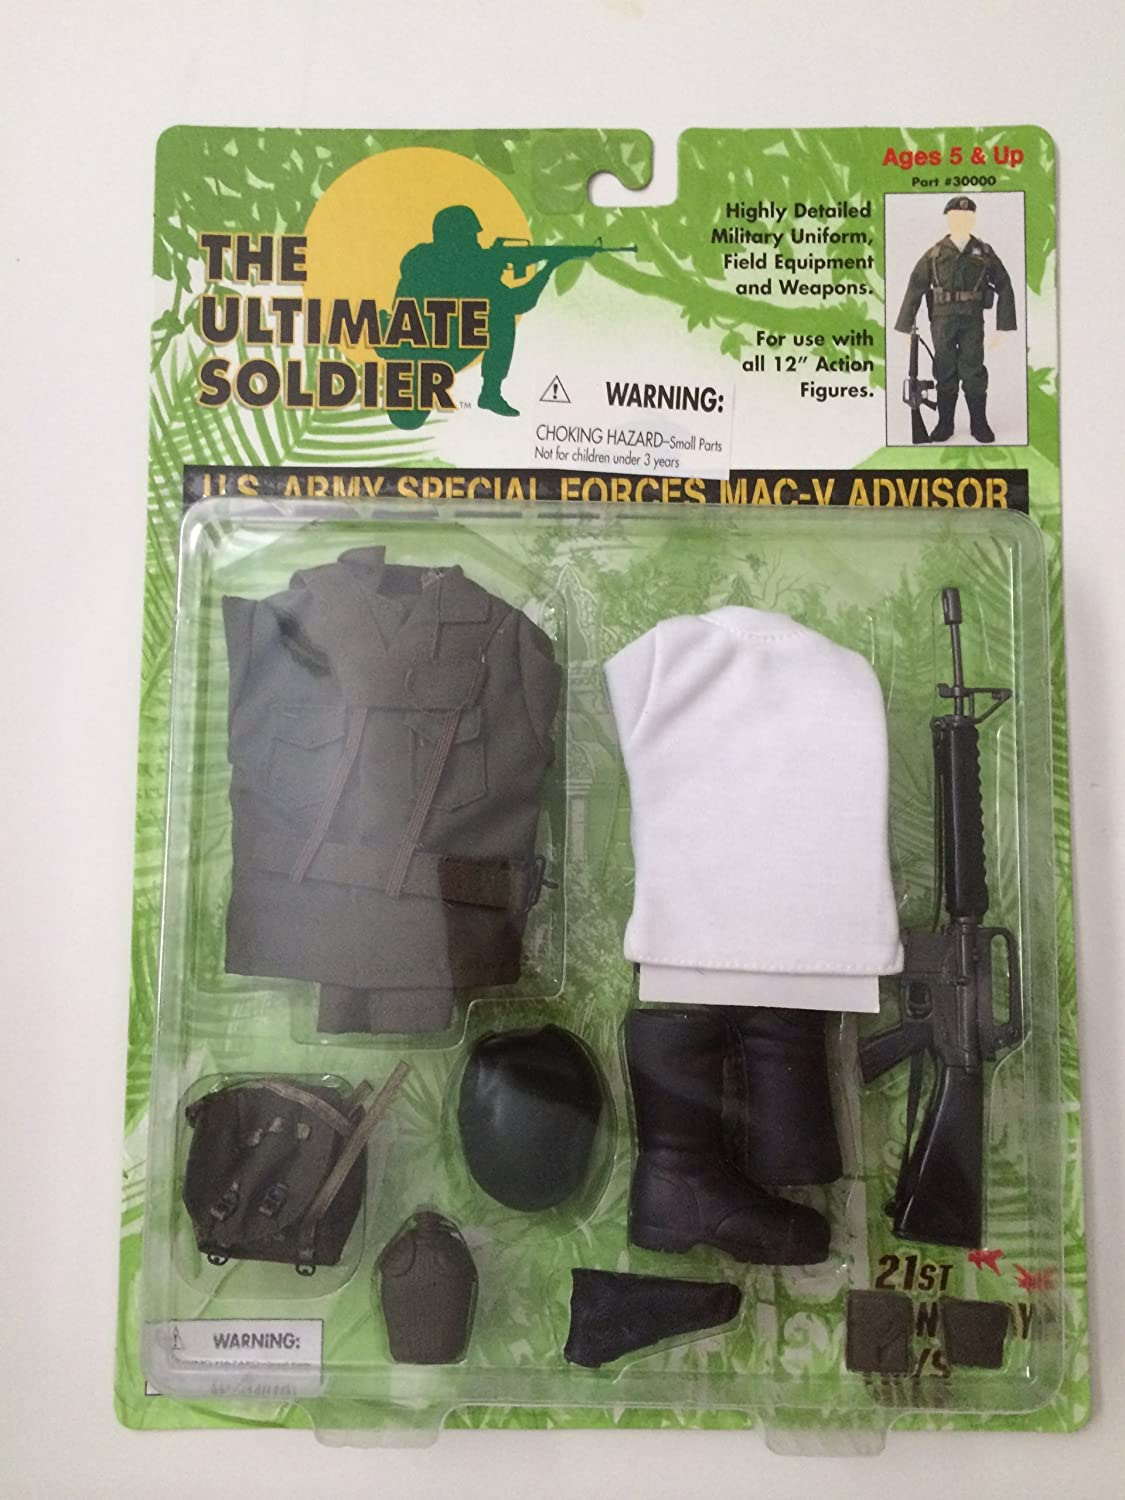 Ultisol 1997 - The Ultimate Soldier - U.S. ARMY SPECIAL FORCES MAC-V ADVISOR - Outfit / Waffen Zubehörset (olives Shirt) für 12 inch/30cm Figuren - OVP